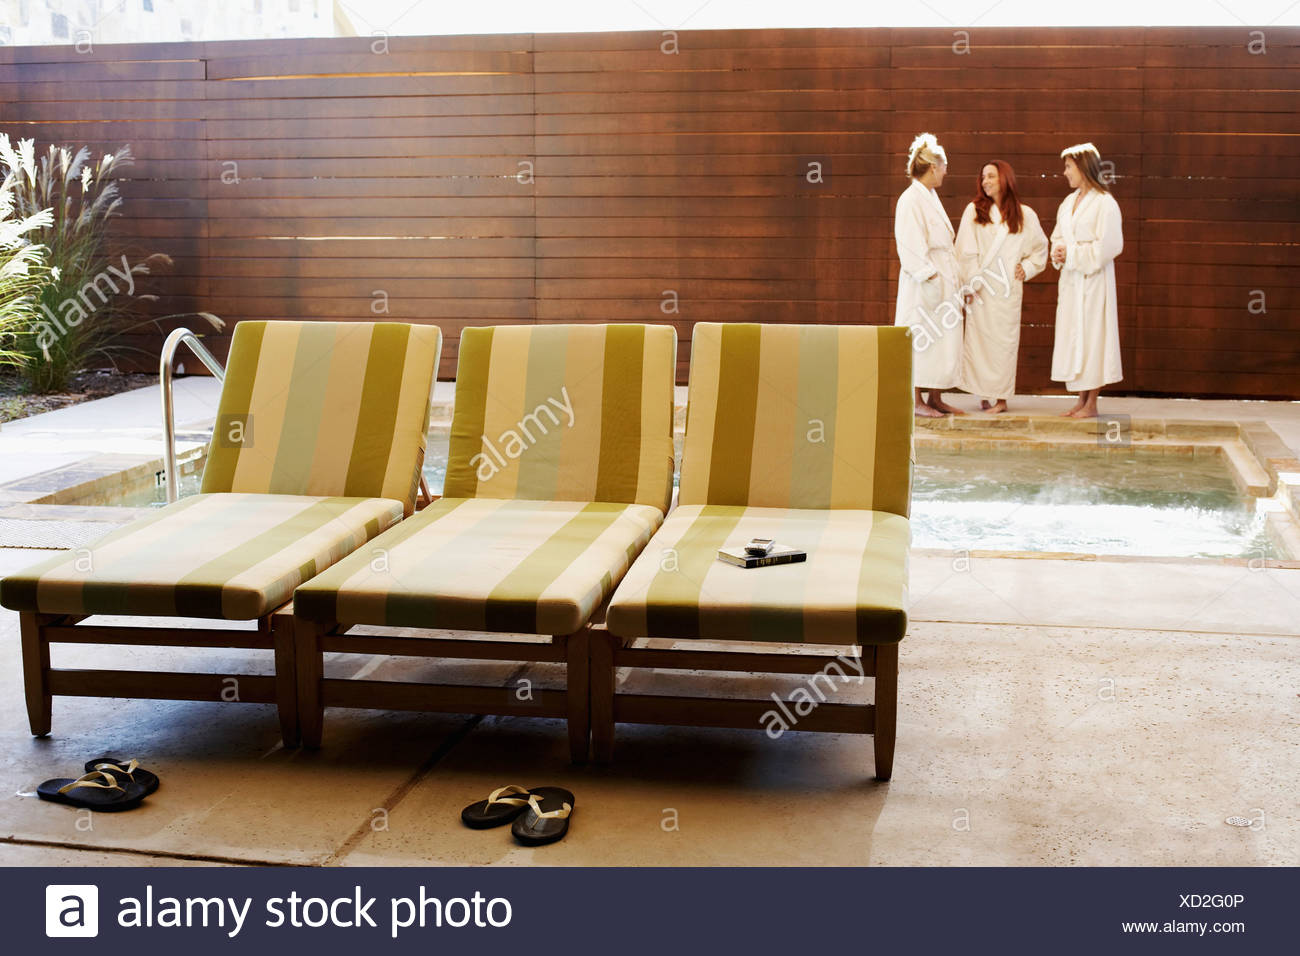 Three empty lounge chairs with three women in the background - Stock Image